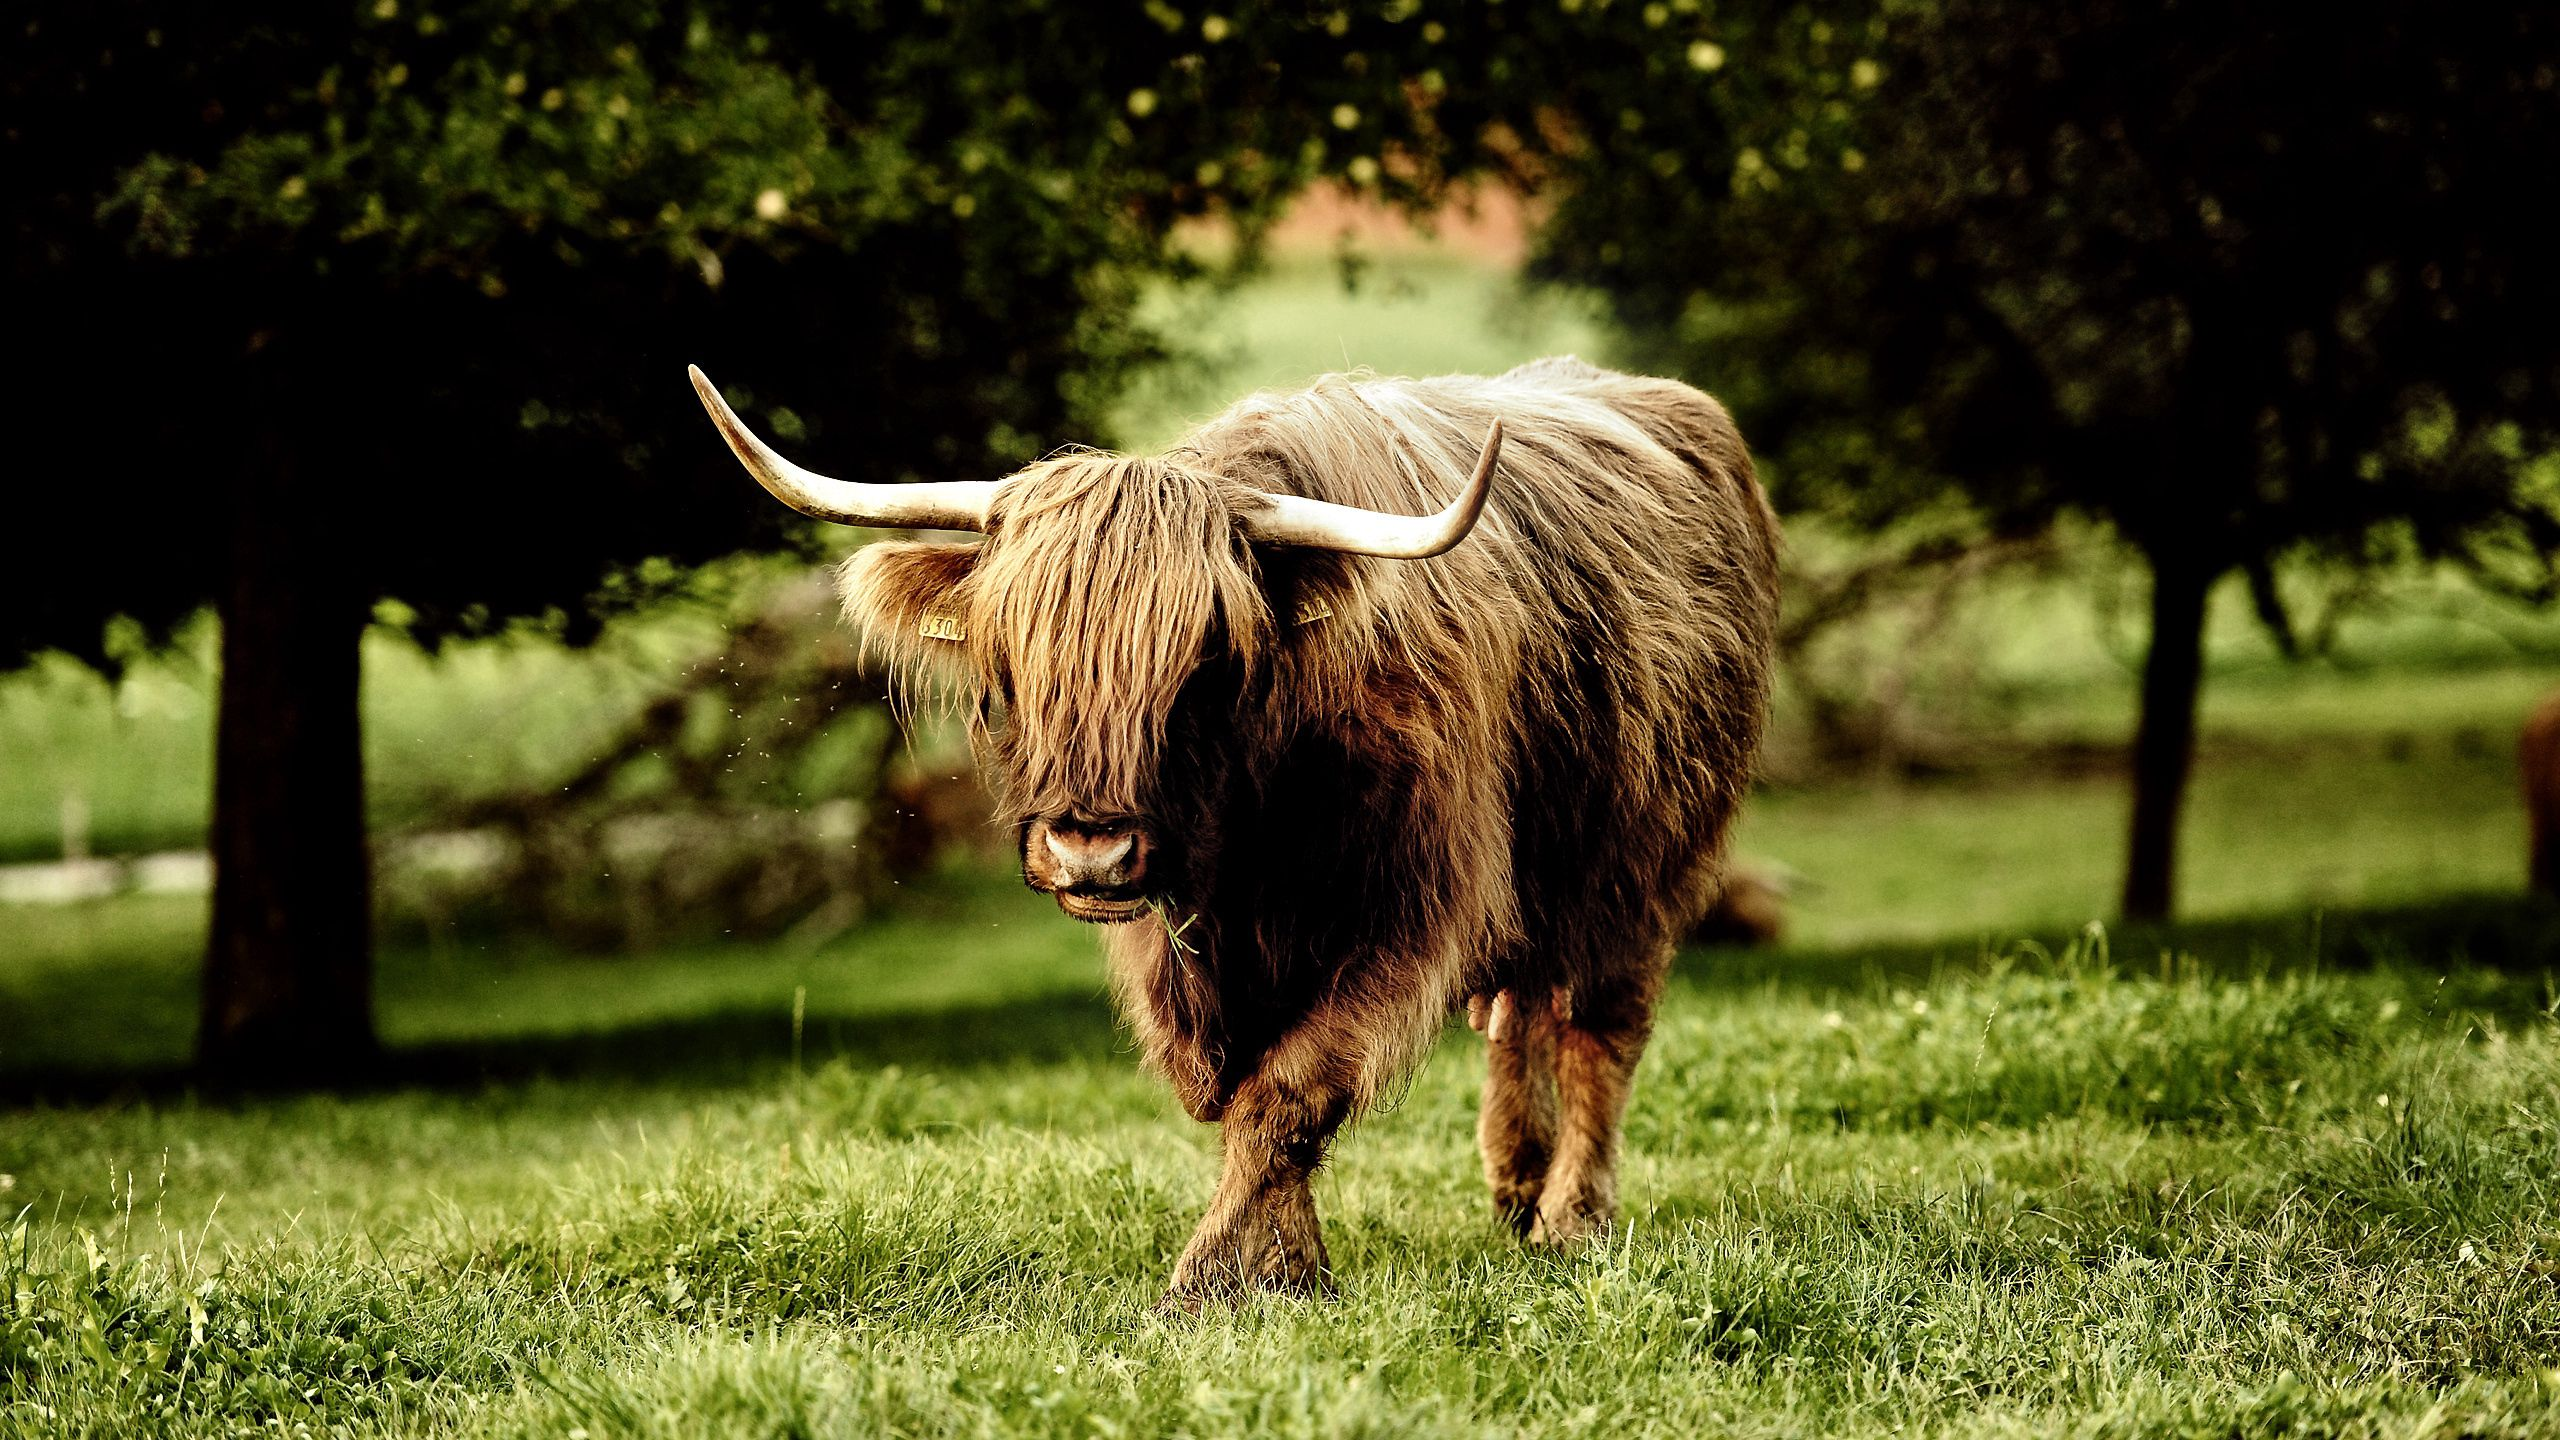 72775 download wallpaper Animals, Buffalo, Bull, Grass, Stroll, Horns screensavers and pictures for free